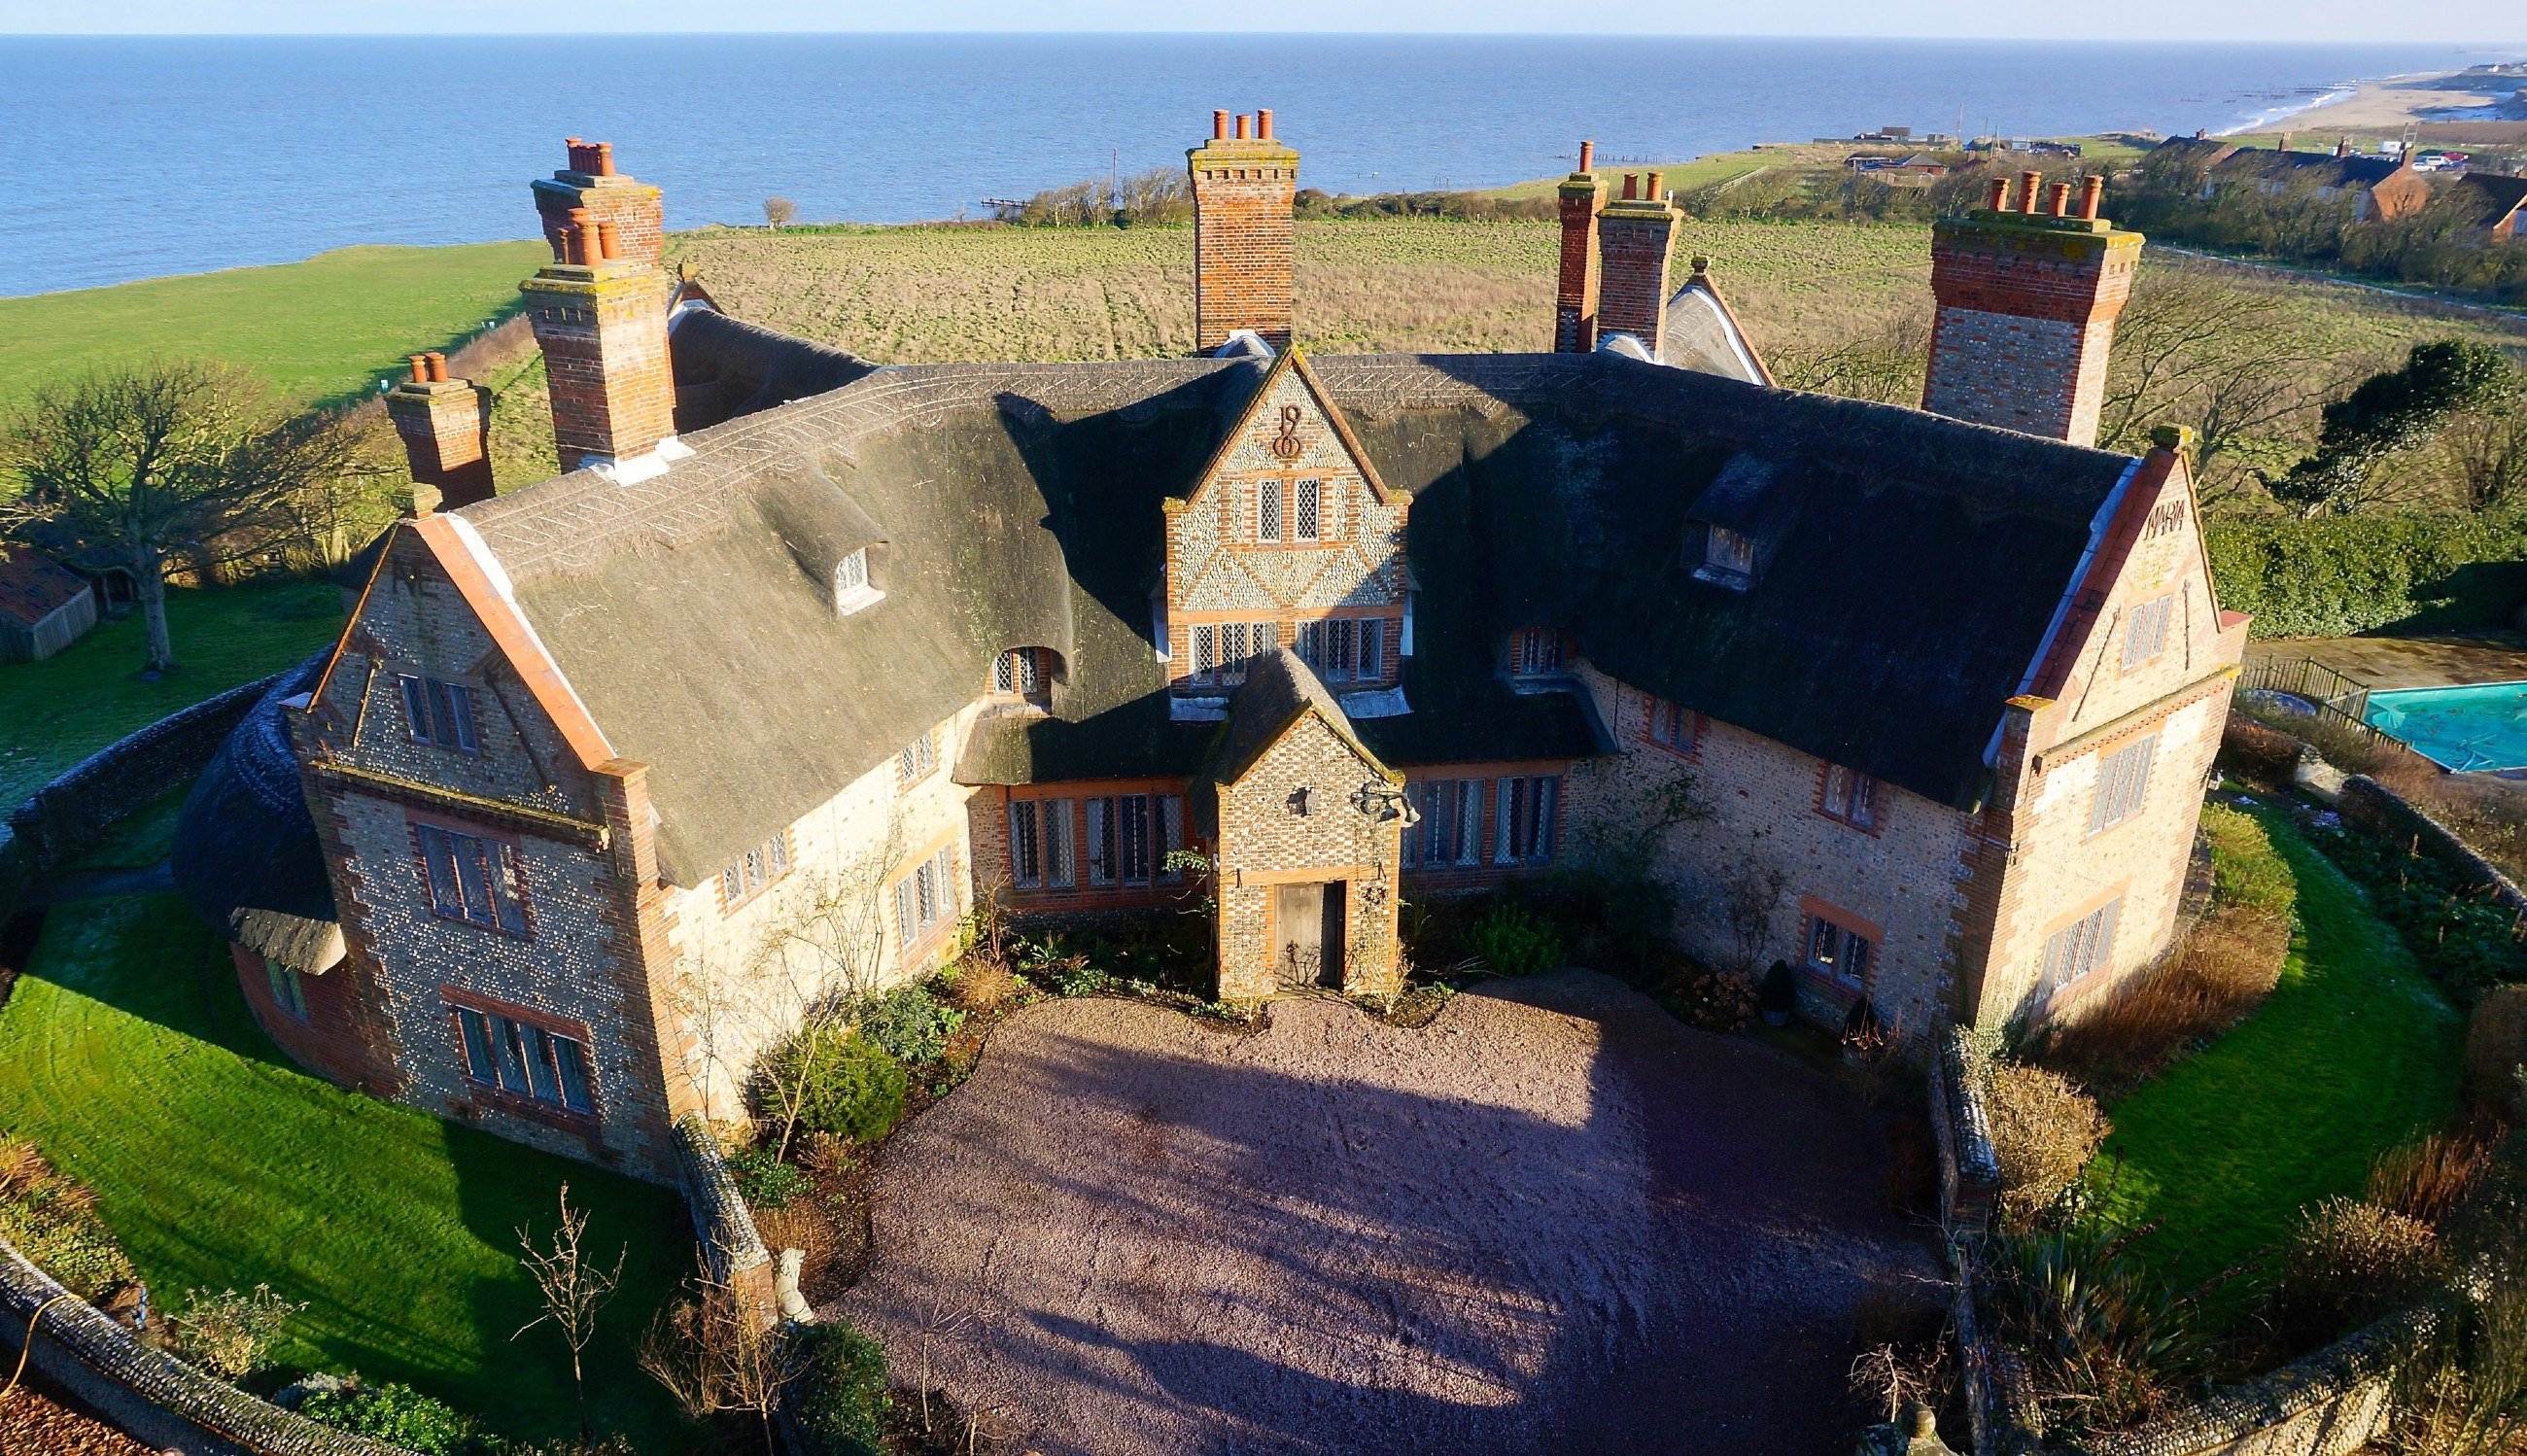 Phenomenal August House Luxury Self Catering Manor Happisburgh Norfolk Download Free Architecture Designs Embacsunscenecom